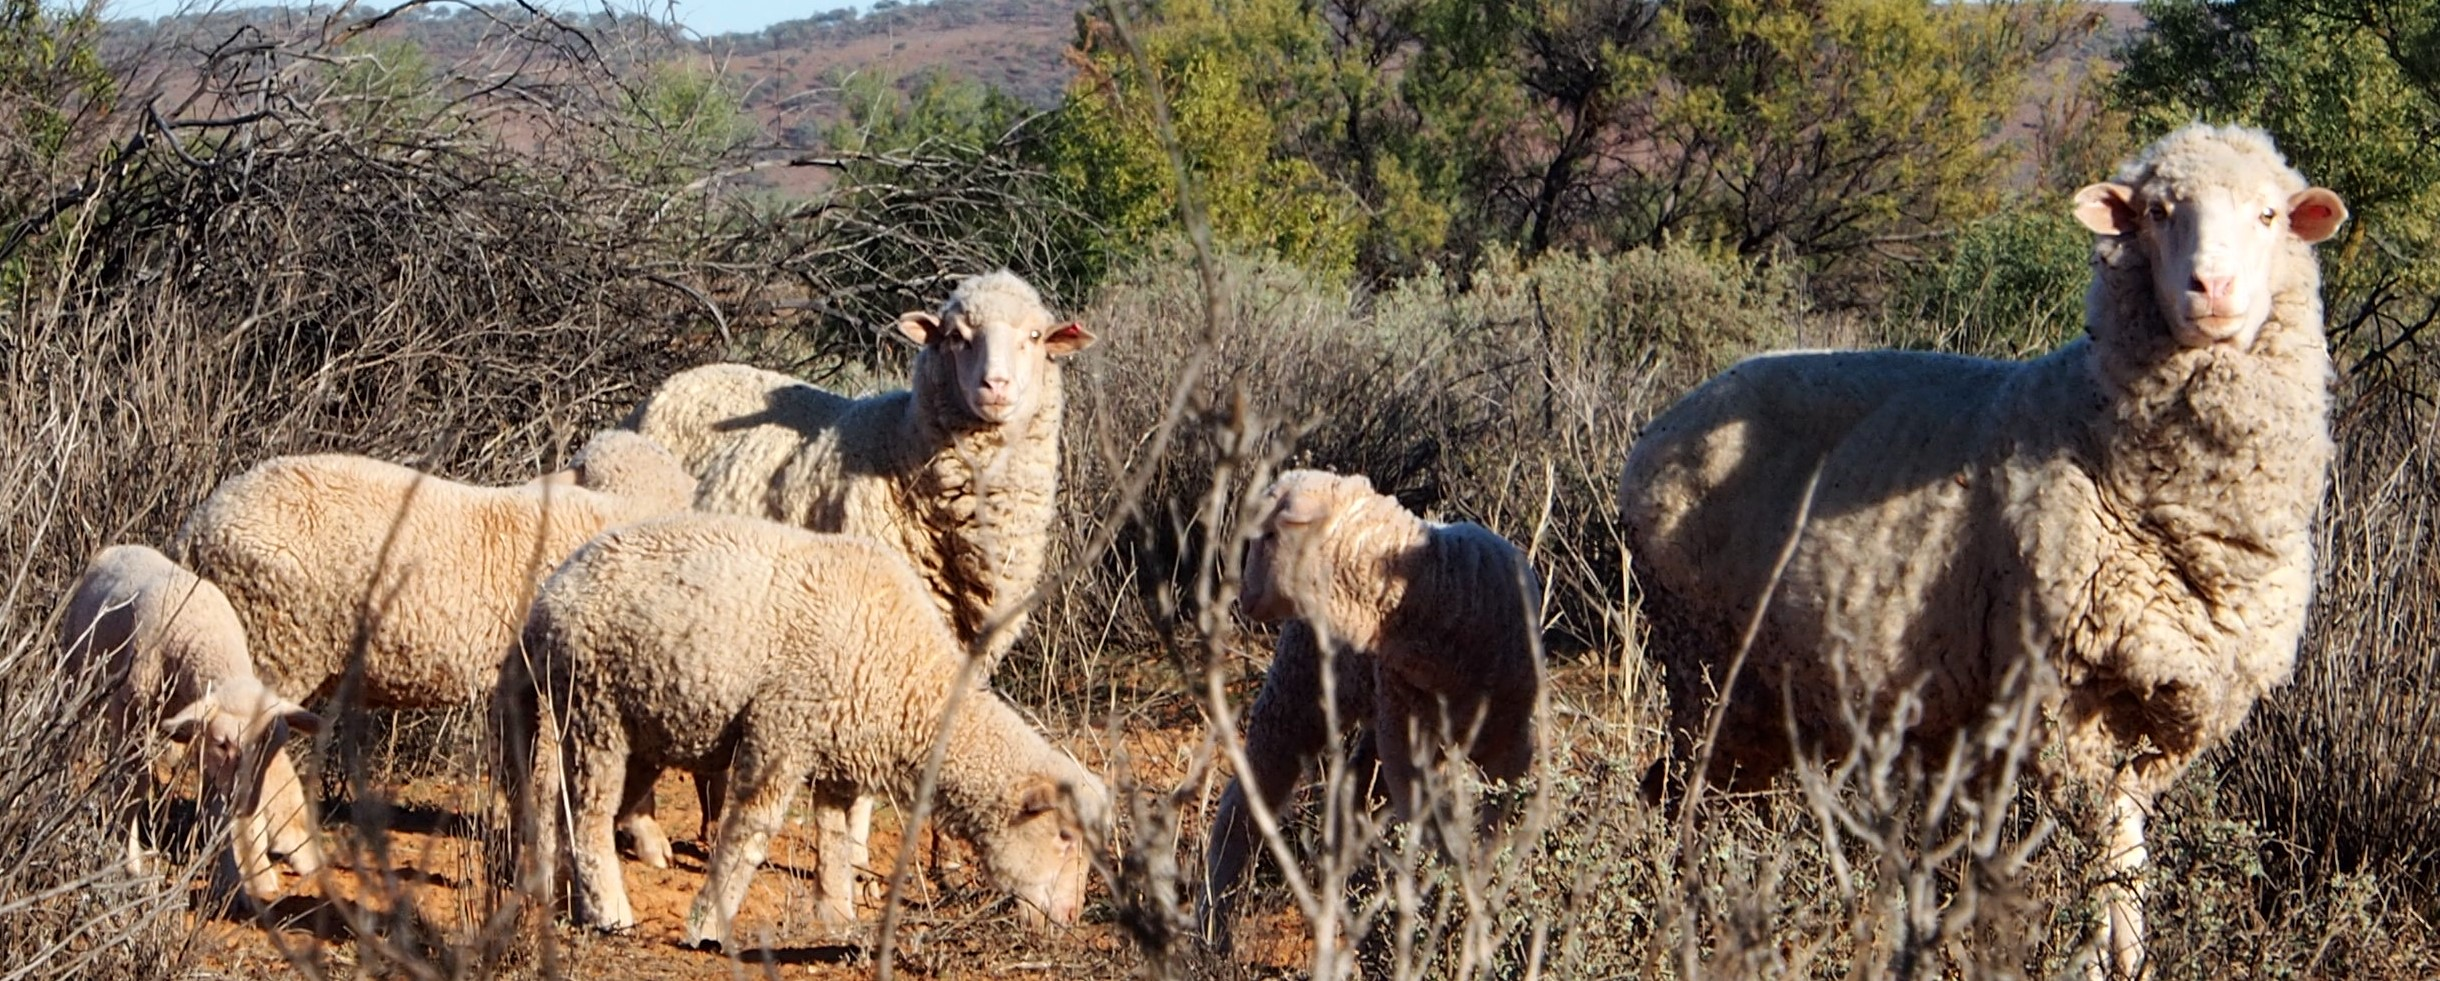 Sheep at Fowlers Gap Research Station